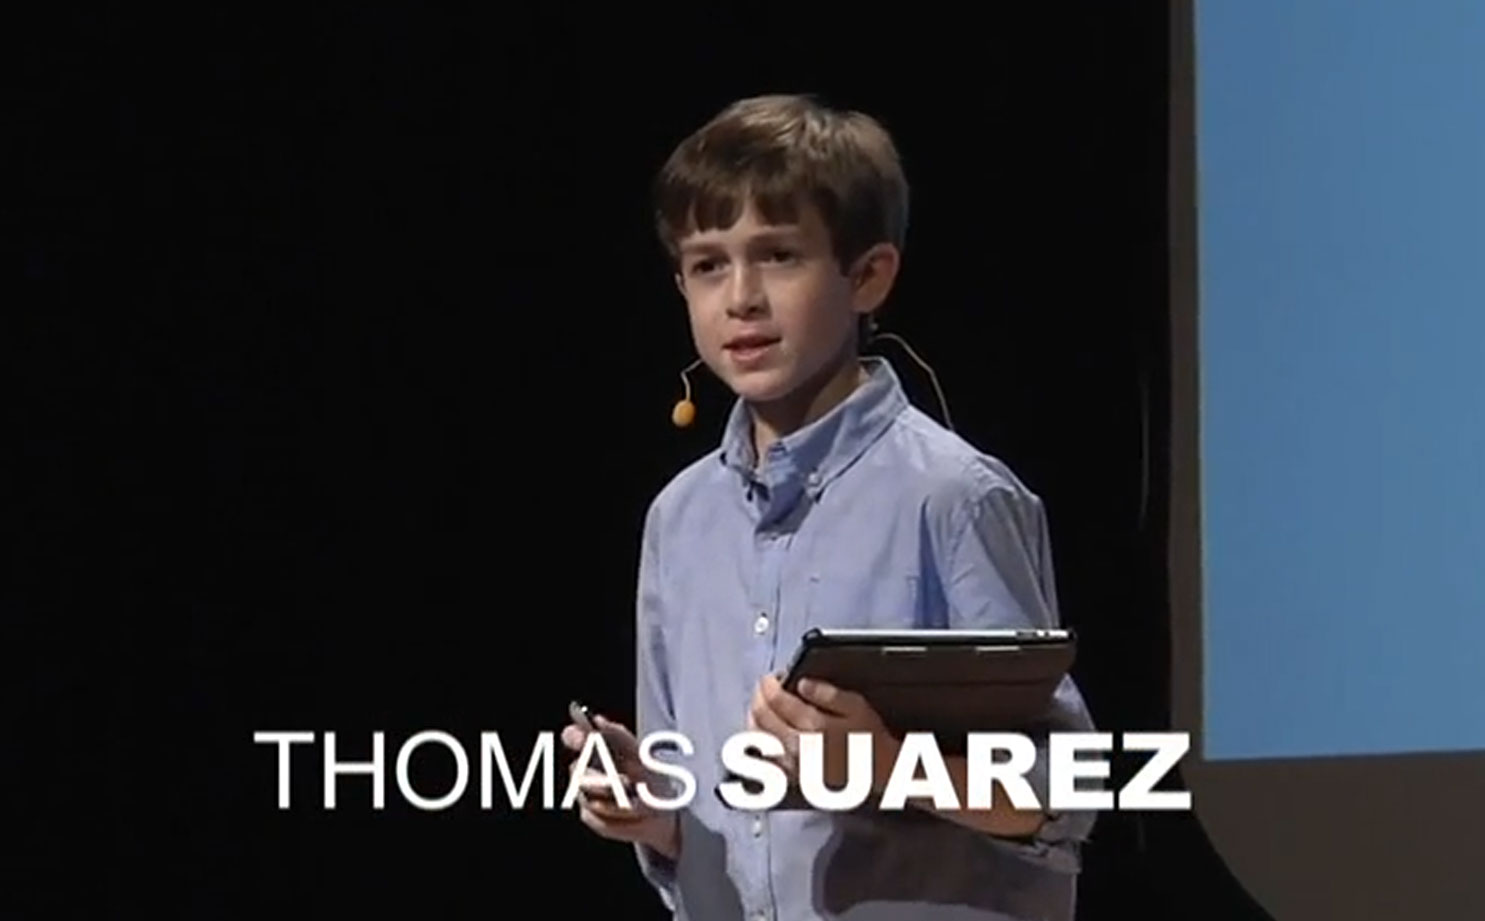 Speakers Thomas Suarez: Developer, 12 year old